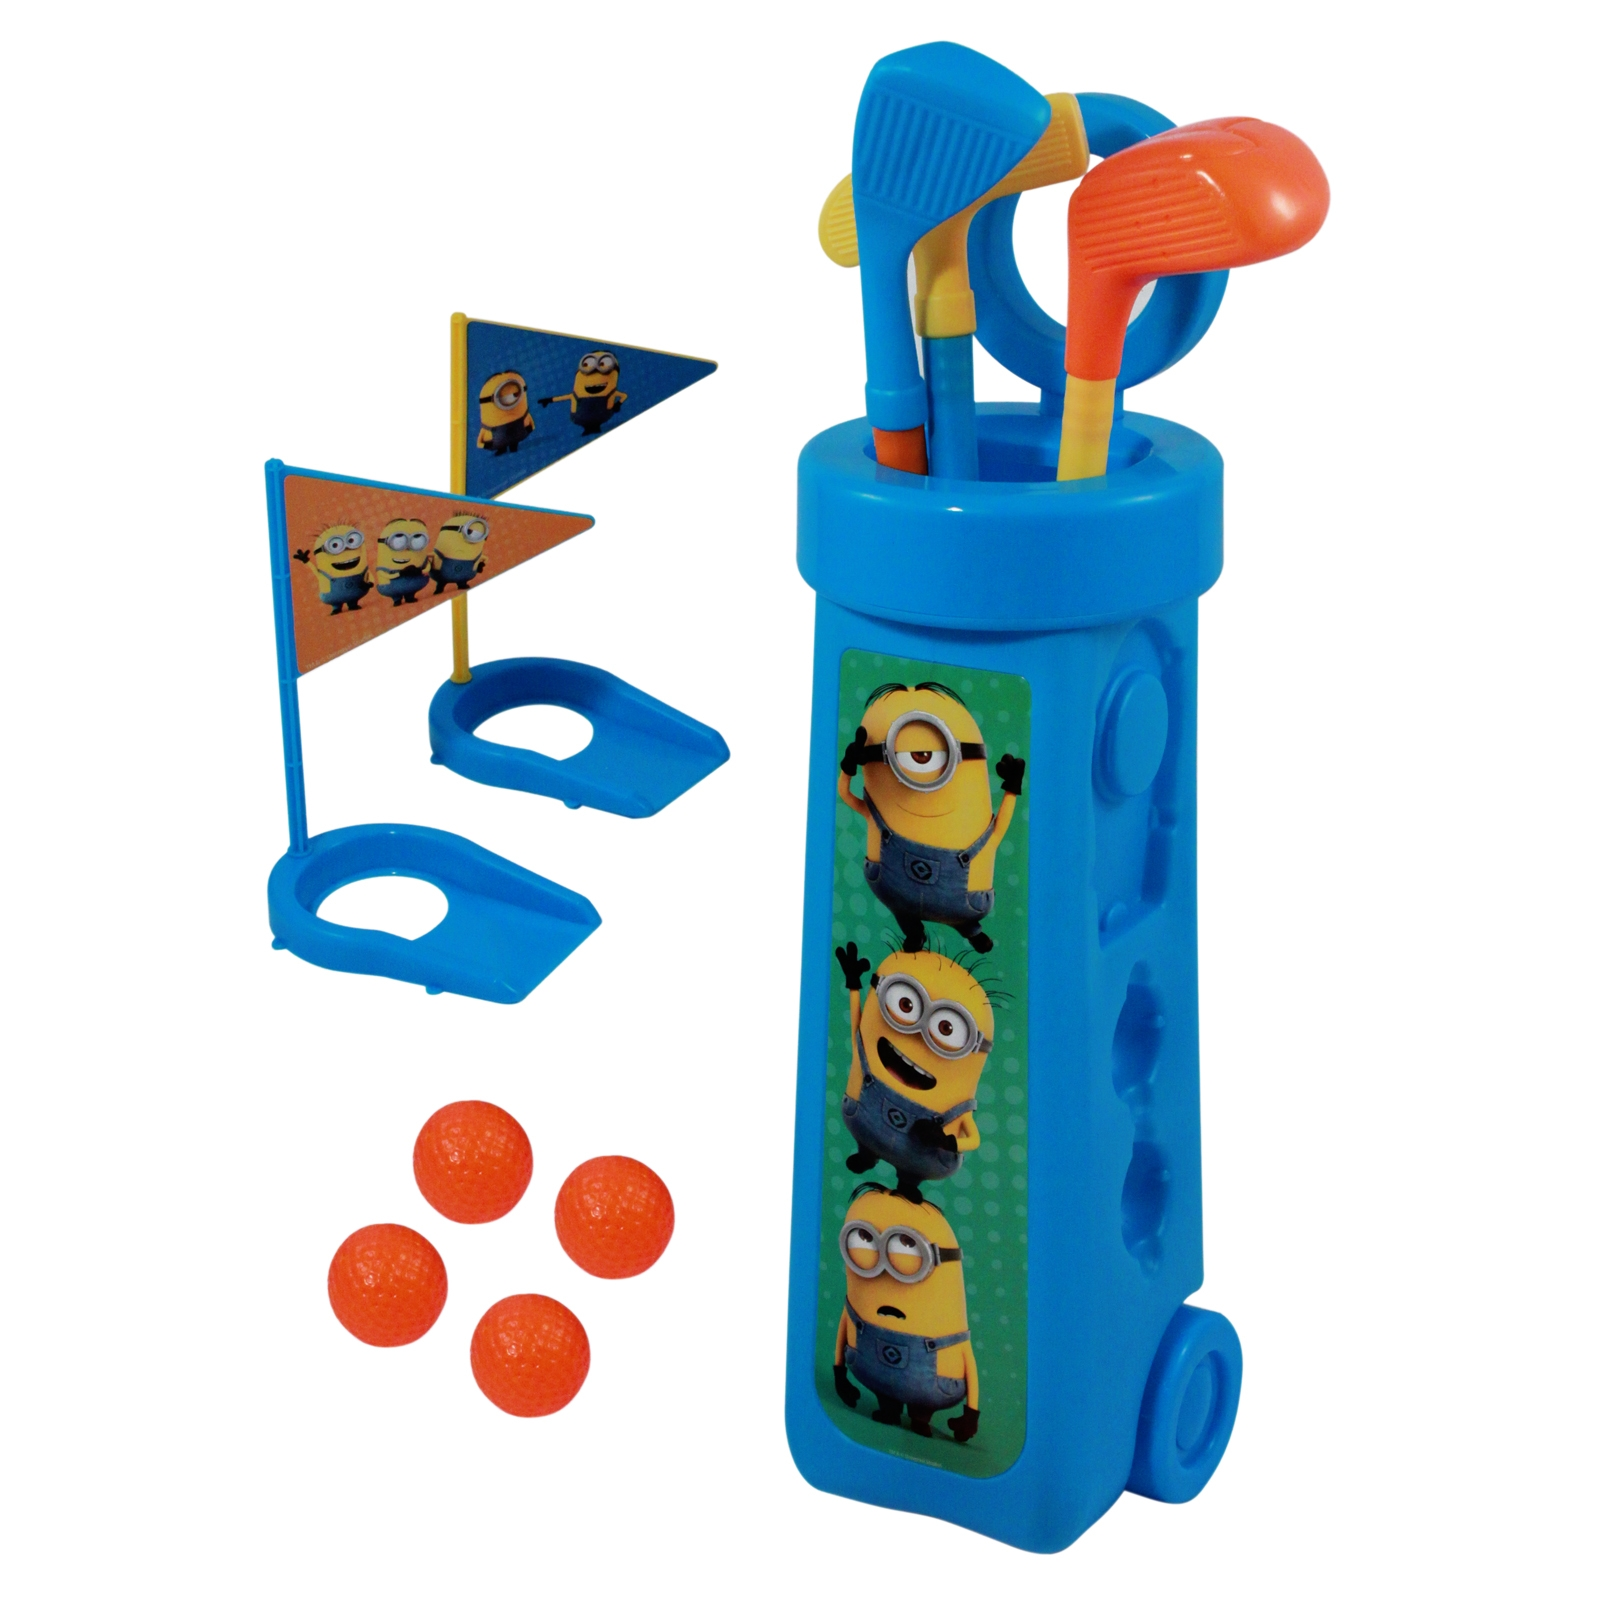 1600x1600 Pretend Play Golf Set Little Tykes Totsports Junior Club